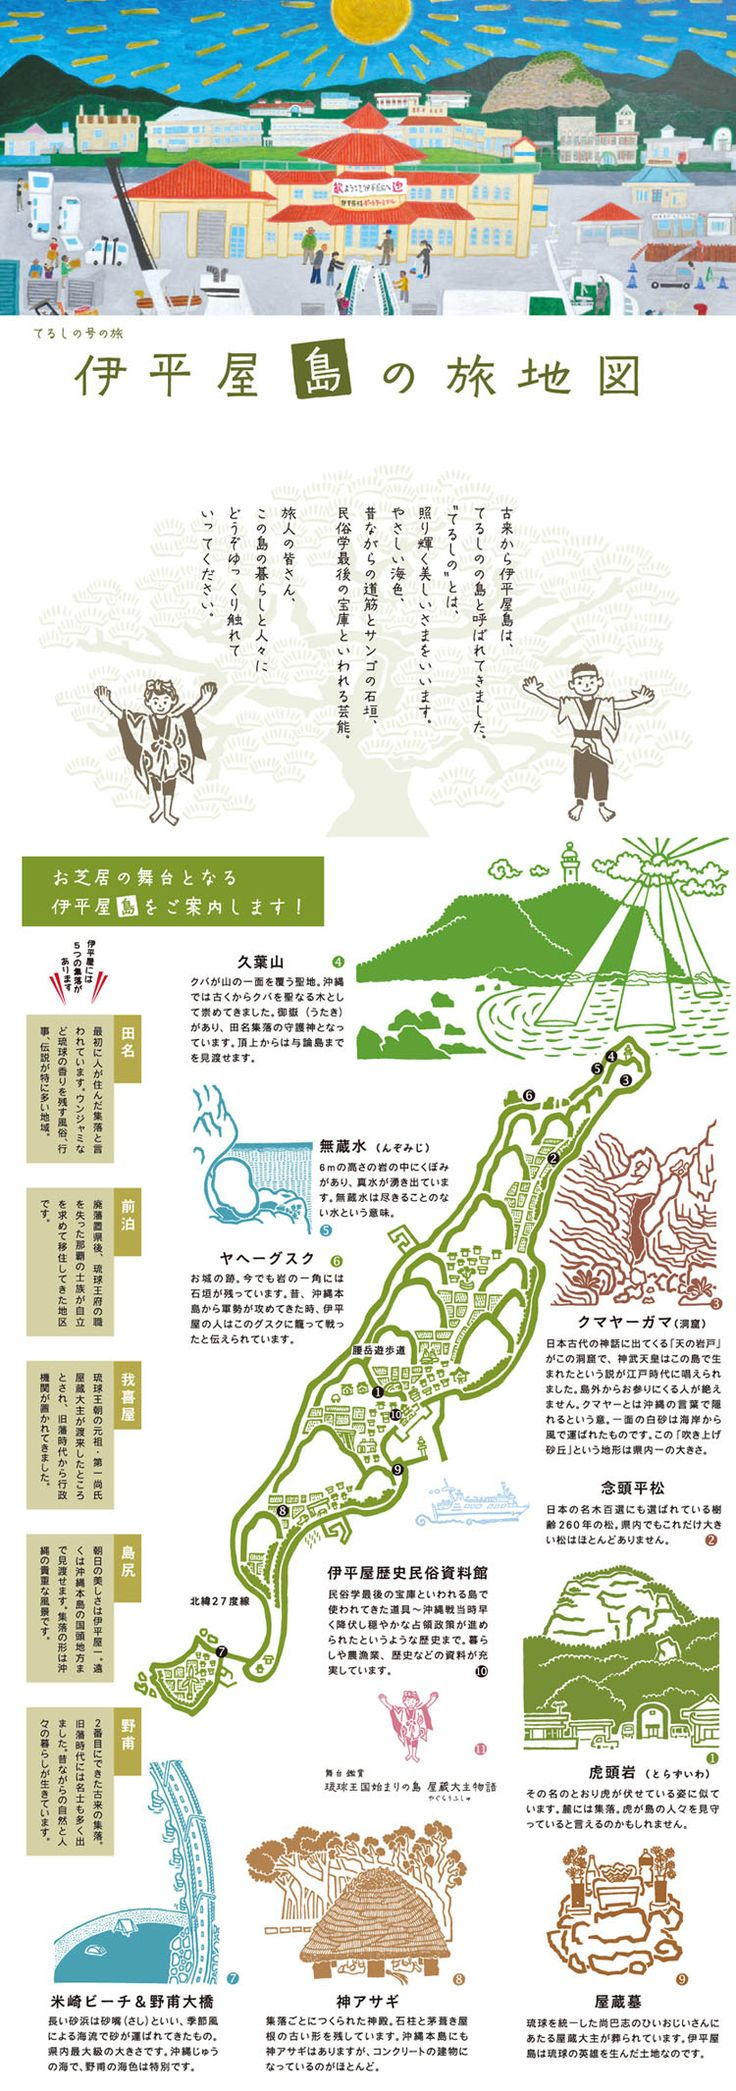 伊平屋島の子どもたちによる『琉球王国始まりの島 屋蔵大主物語』の画像:アイデアにんべん, these simple, colorful, childish drawings of places and stories are appealing in their simplicity and bold colour, varying in line thickness and adding some small detail in selected areas and consistently sticking to a style of flat colour against white background works well for this piece.